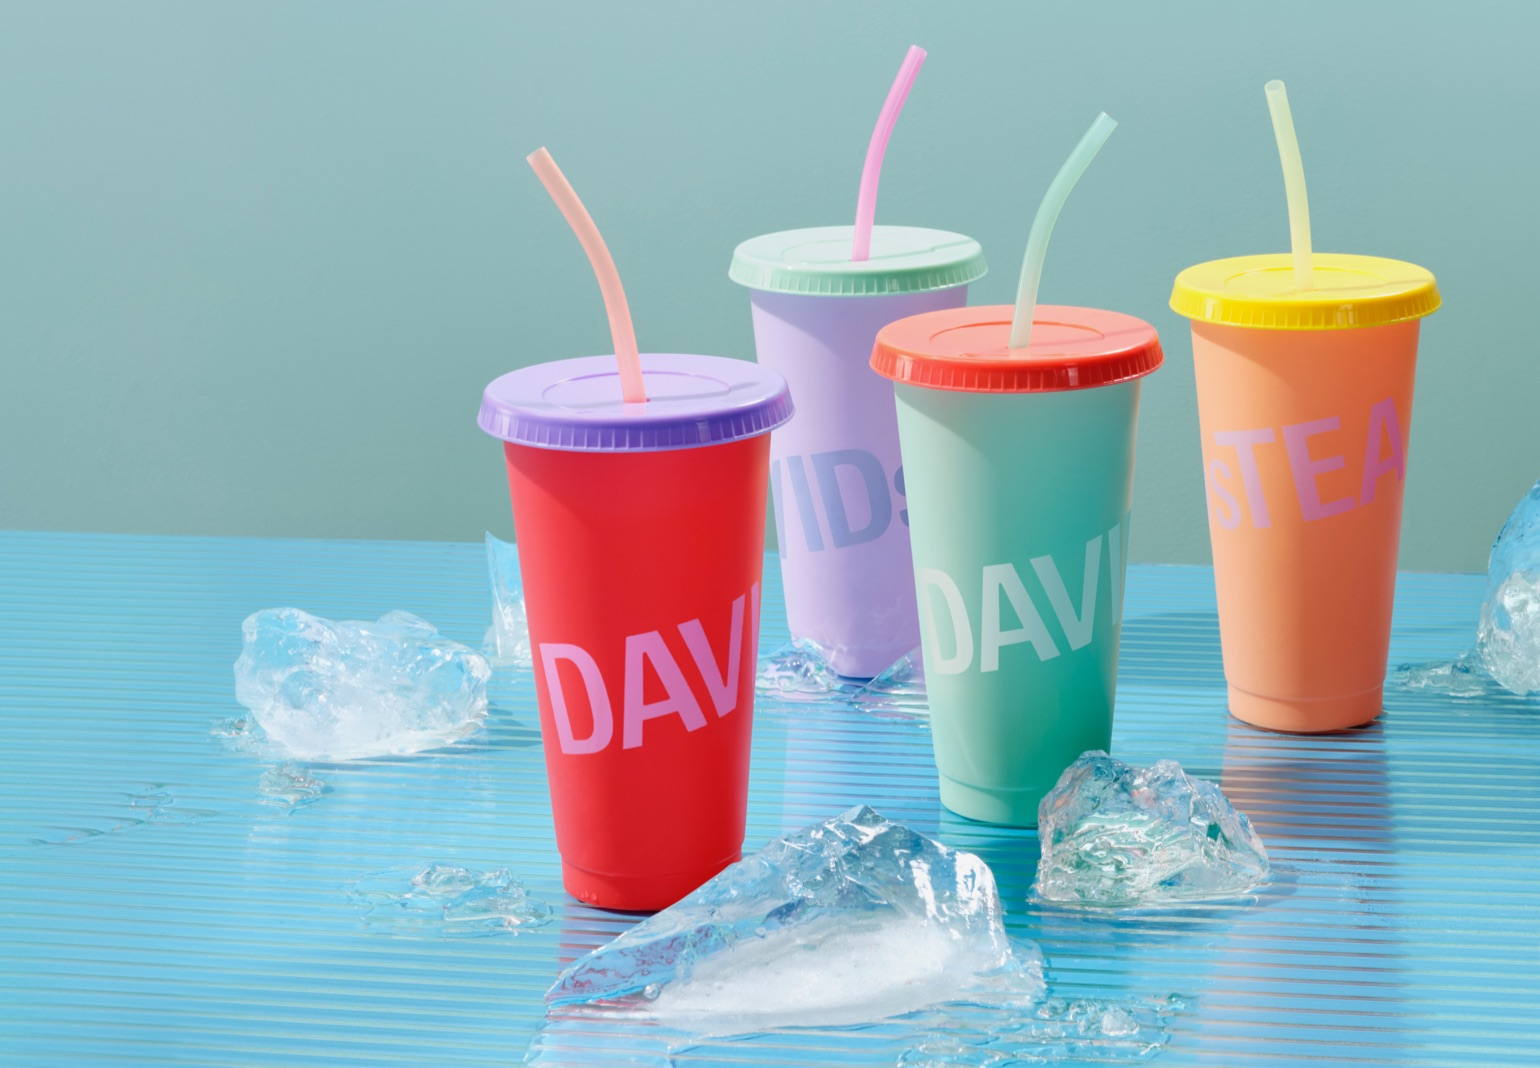 Four colour-changing cups with ice next to them.